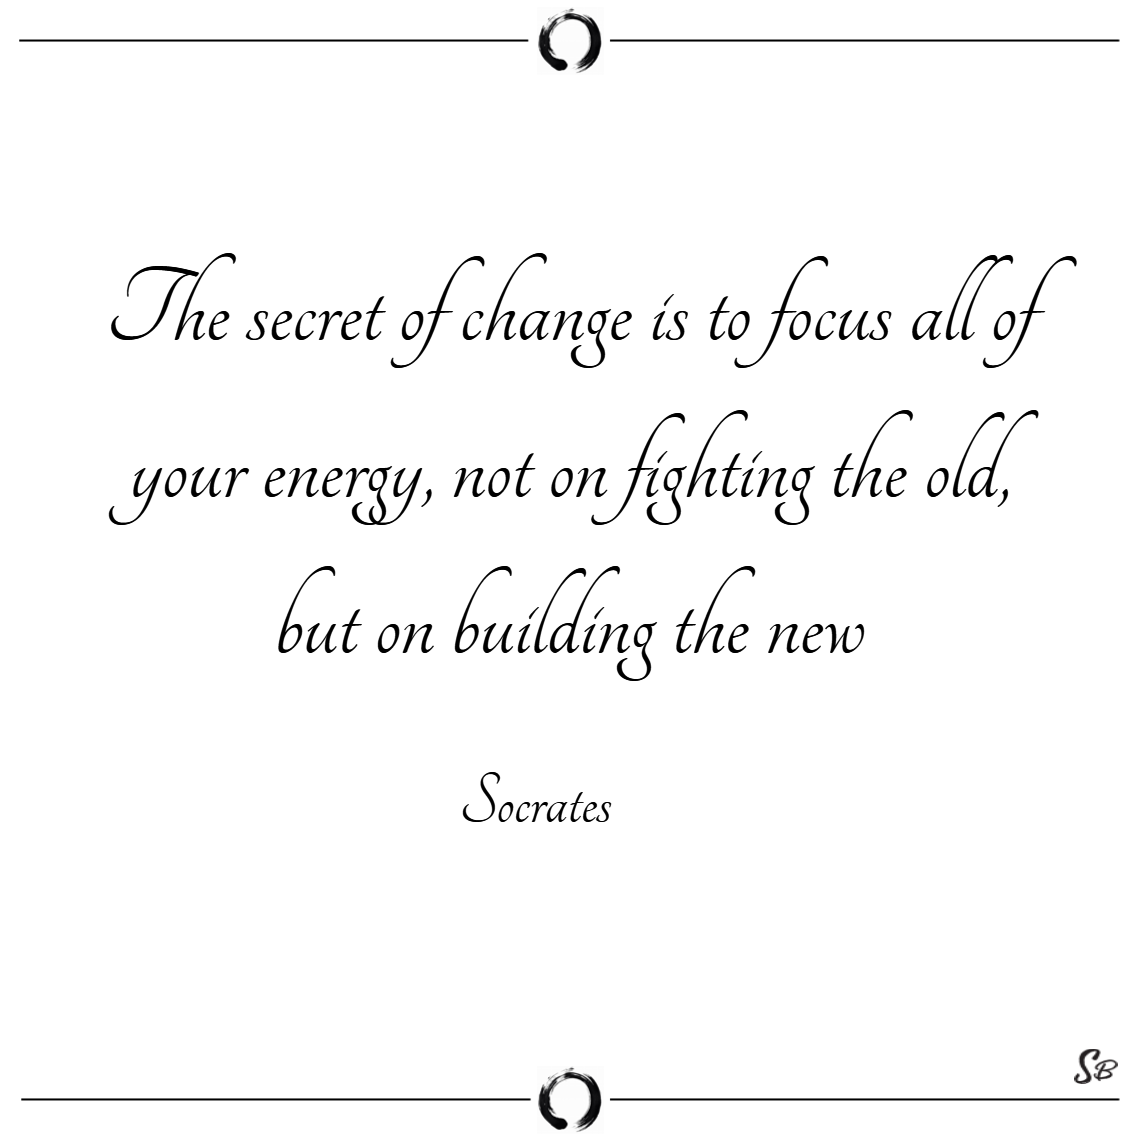 The secret of change is to focus all of your energy, not on fighting the old, but on building the new. – socrates